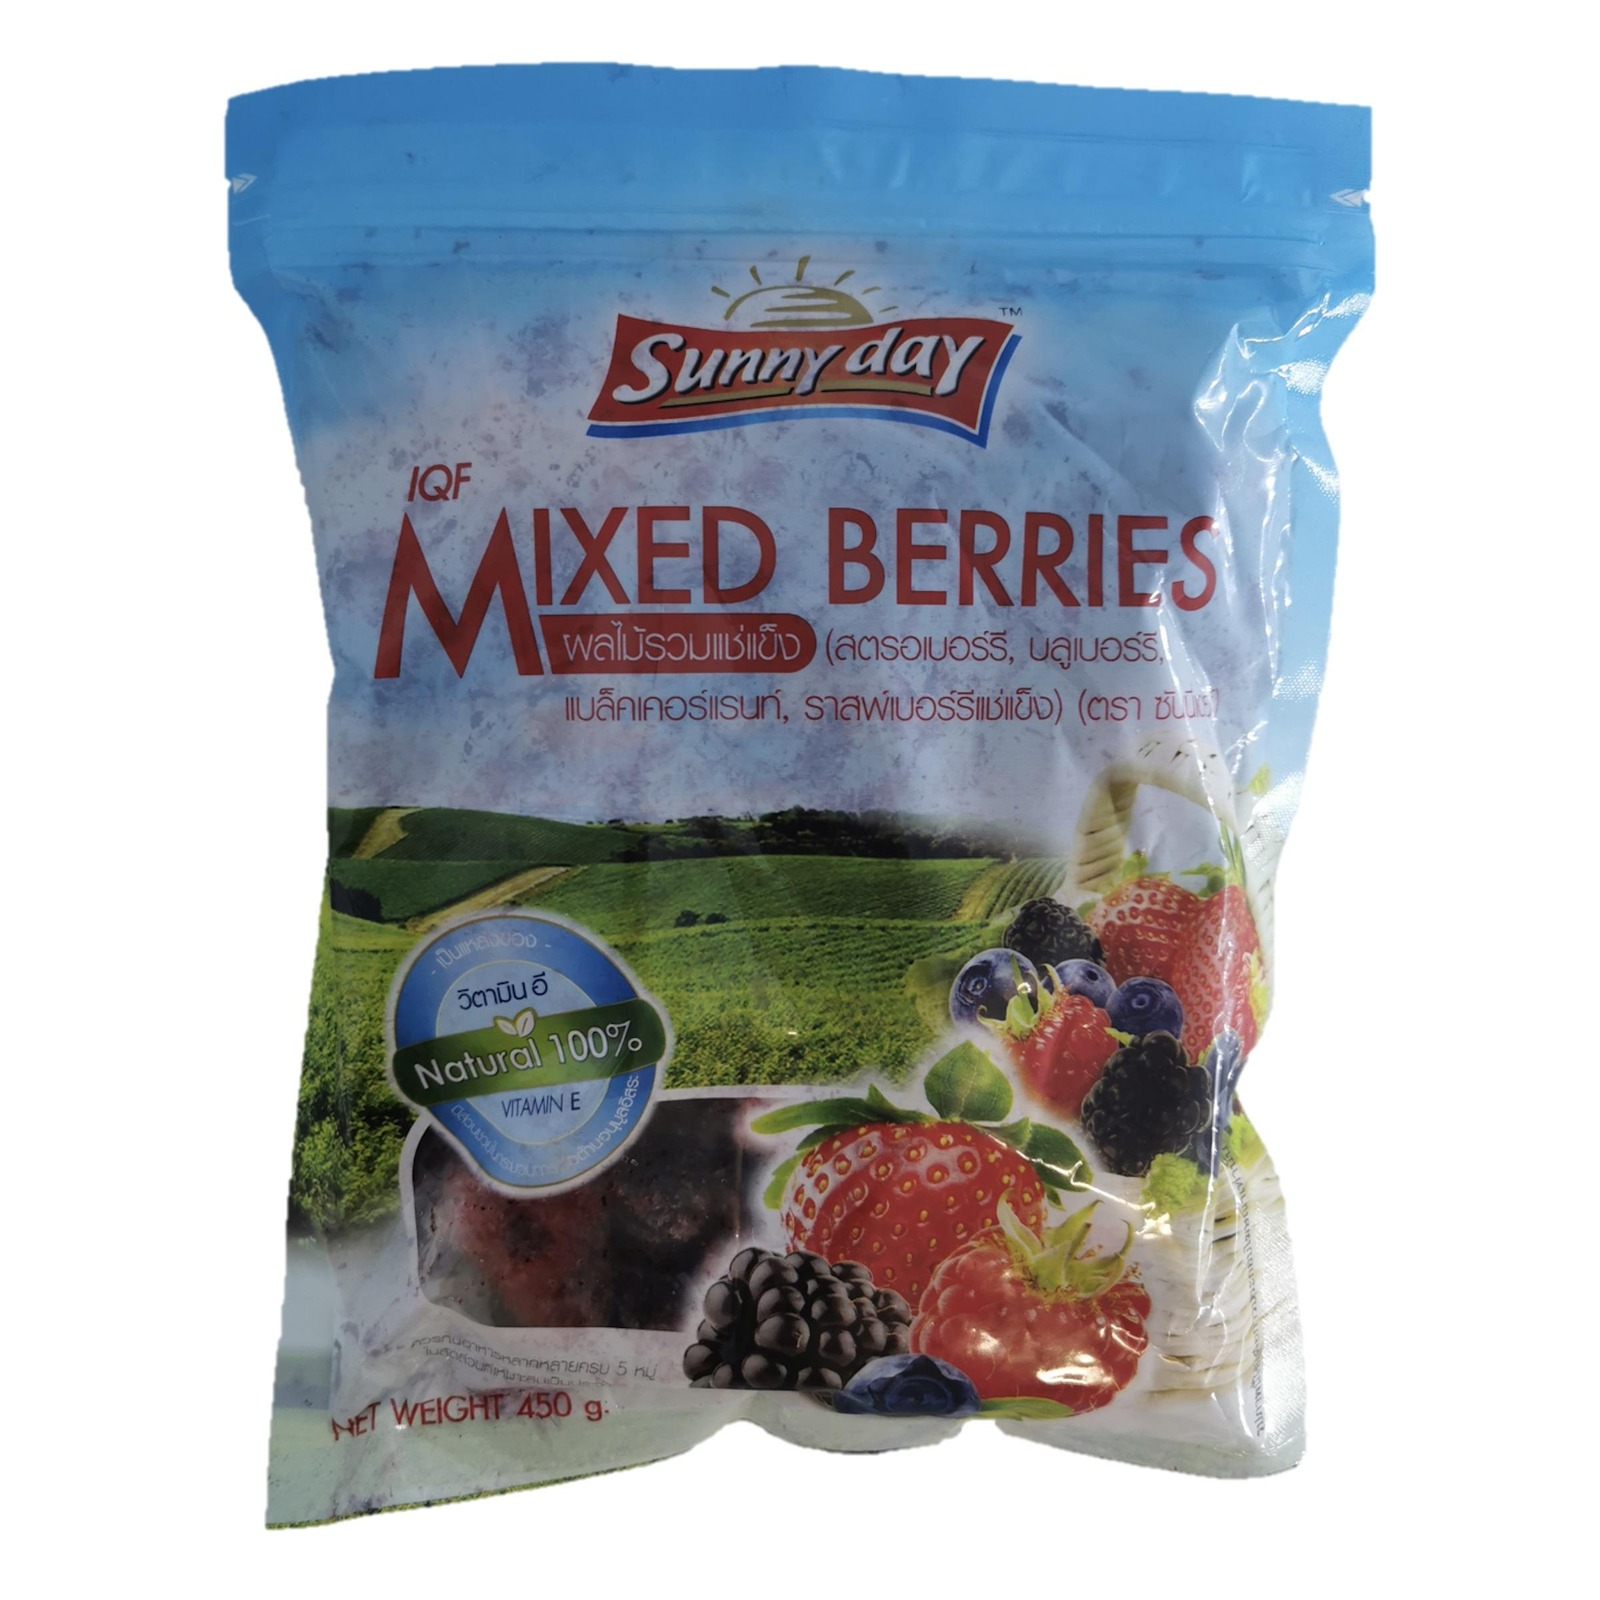 Sunny Days IQF Mixed Berries